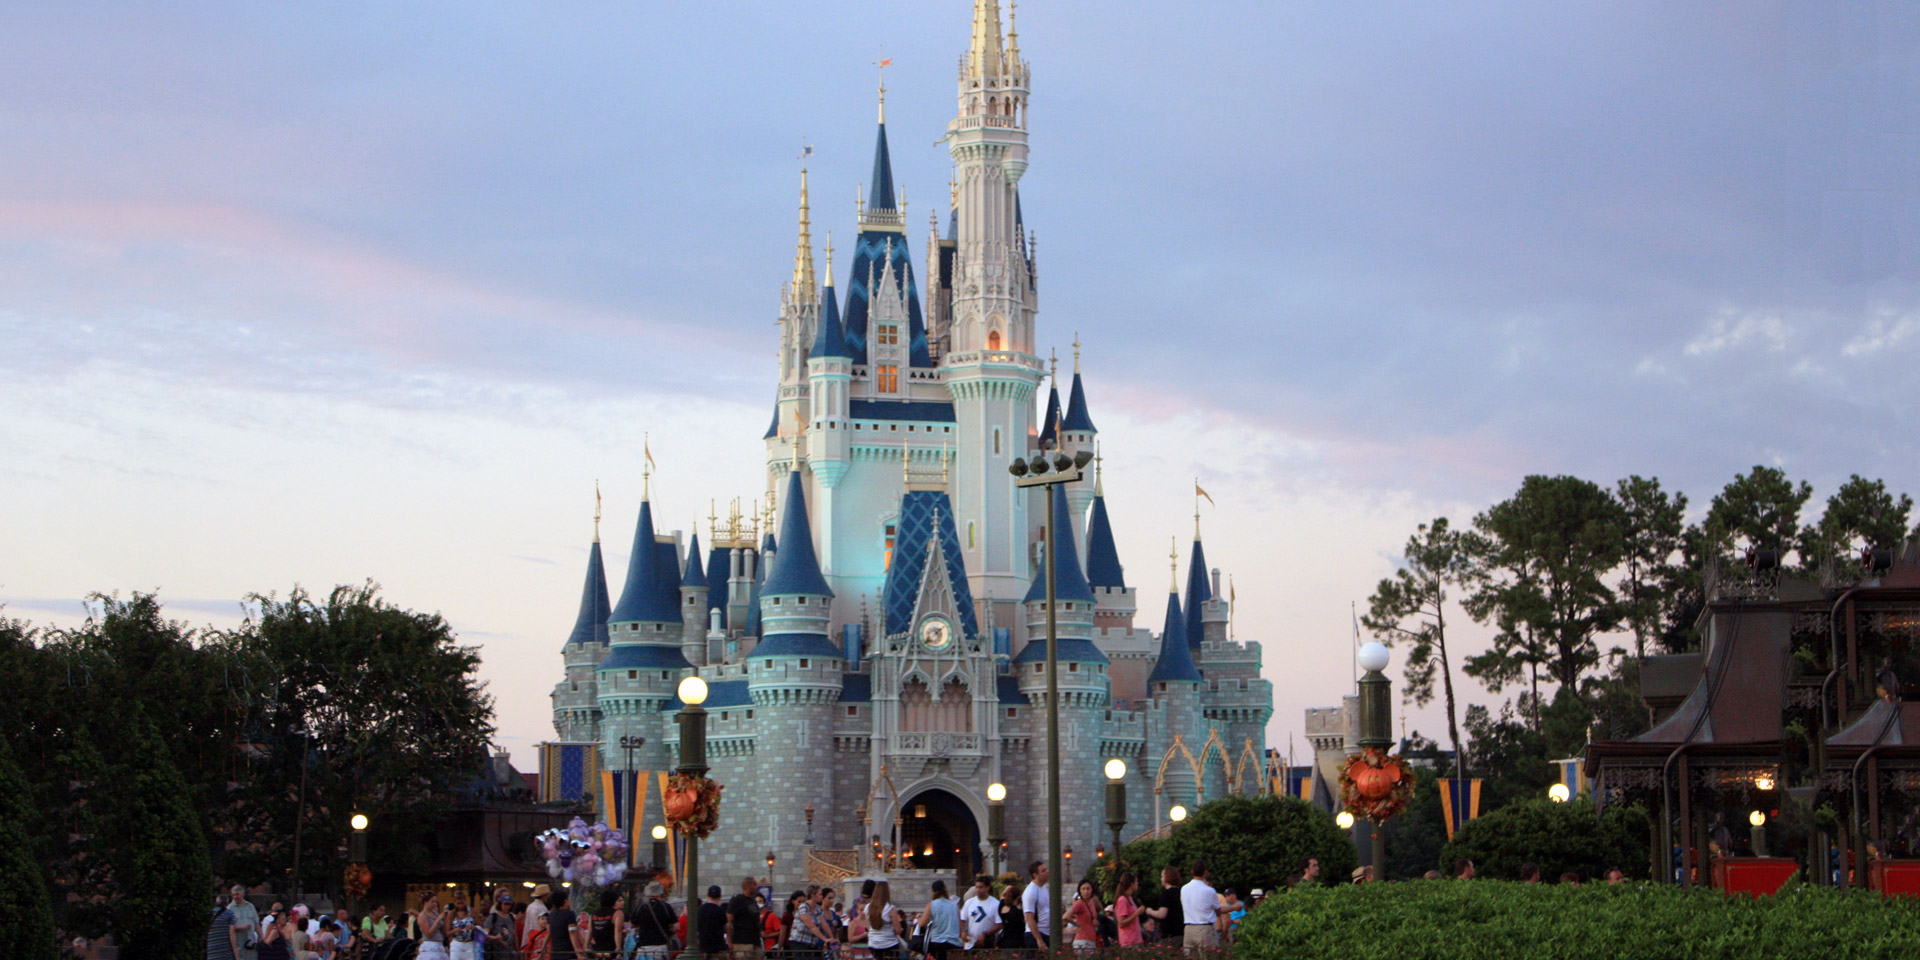 disney world essays Essay about ad analysis: walt disney world resort everyone's dream walt disney is a preeminent company in animation industry throughout the world, commonly known as disney disney has been producing a quality family entertainment since 1920s.